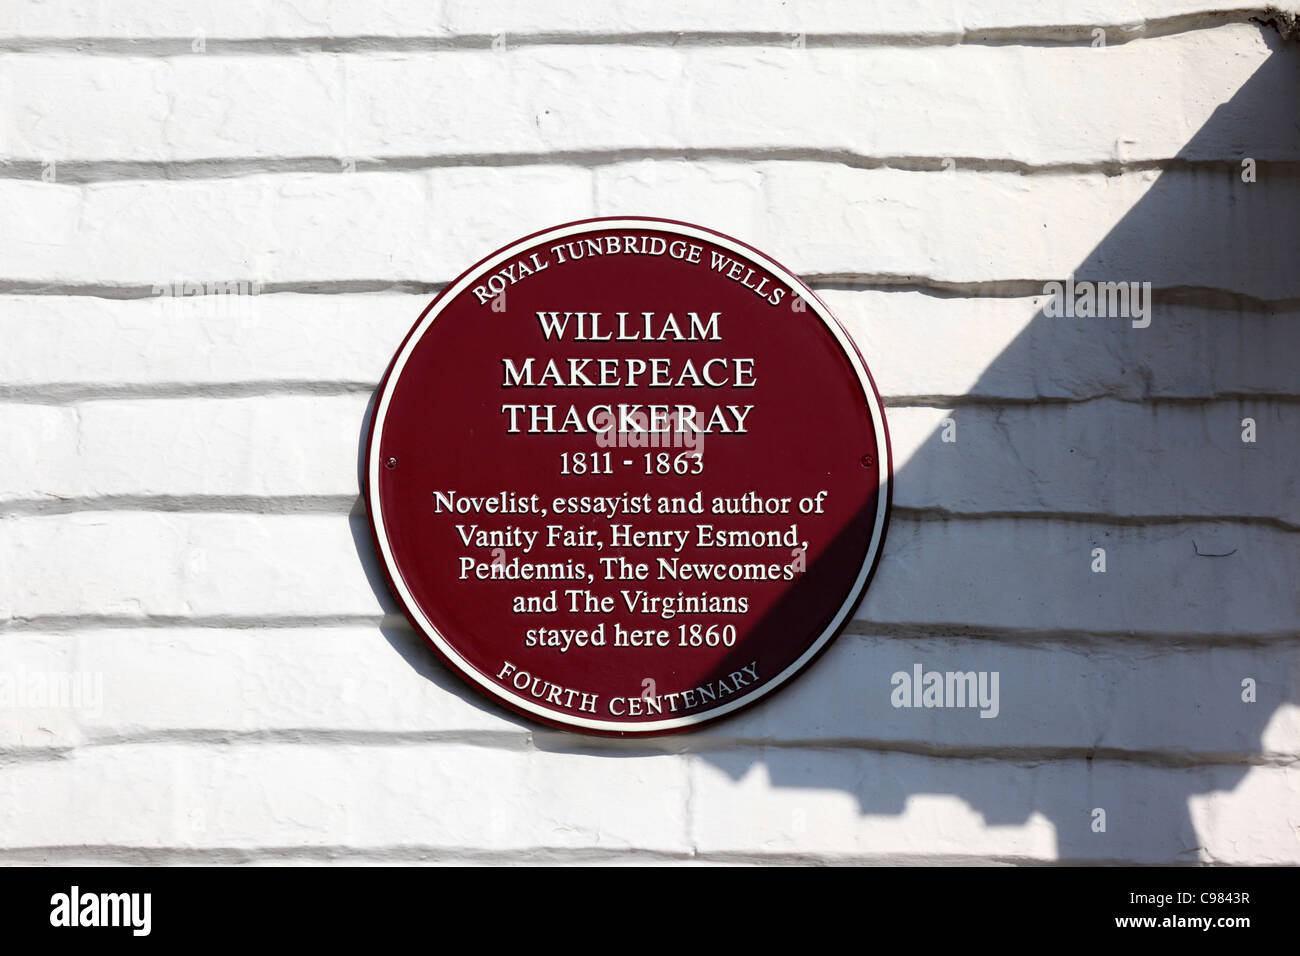 Plaque on house commemorating where novelist William Thackeray stayed in 1860, Royal Tunbridge Wells , Kent , England Stock Photo